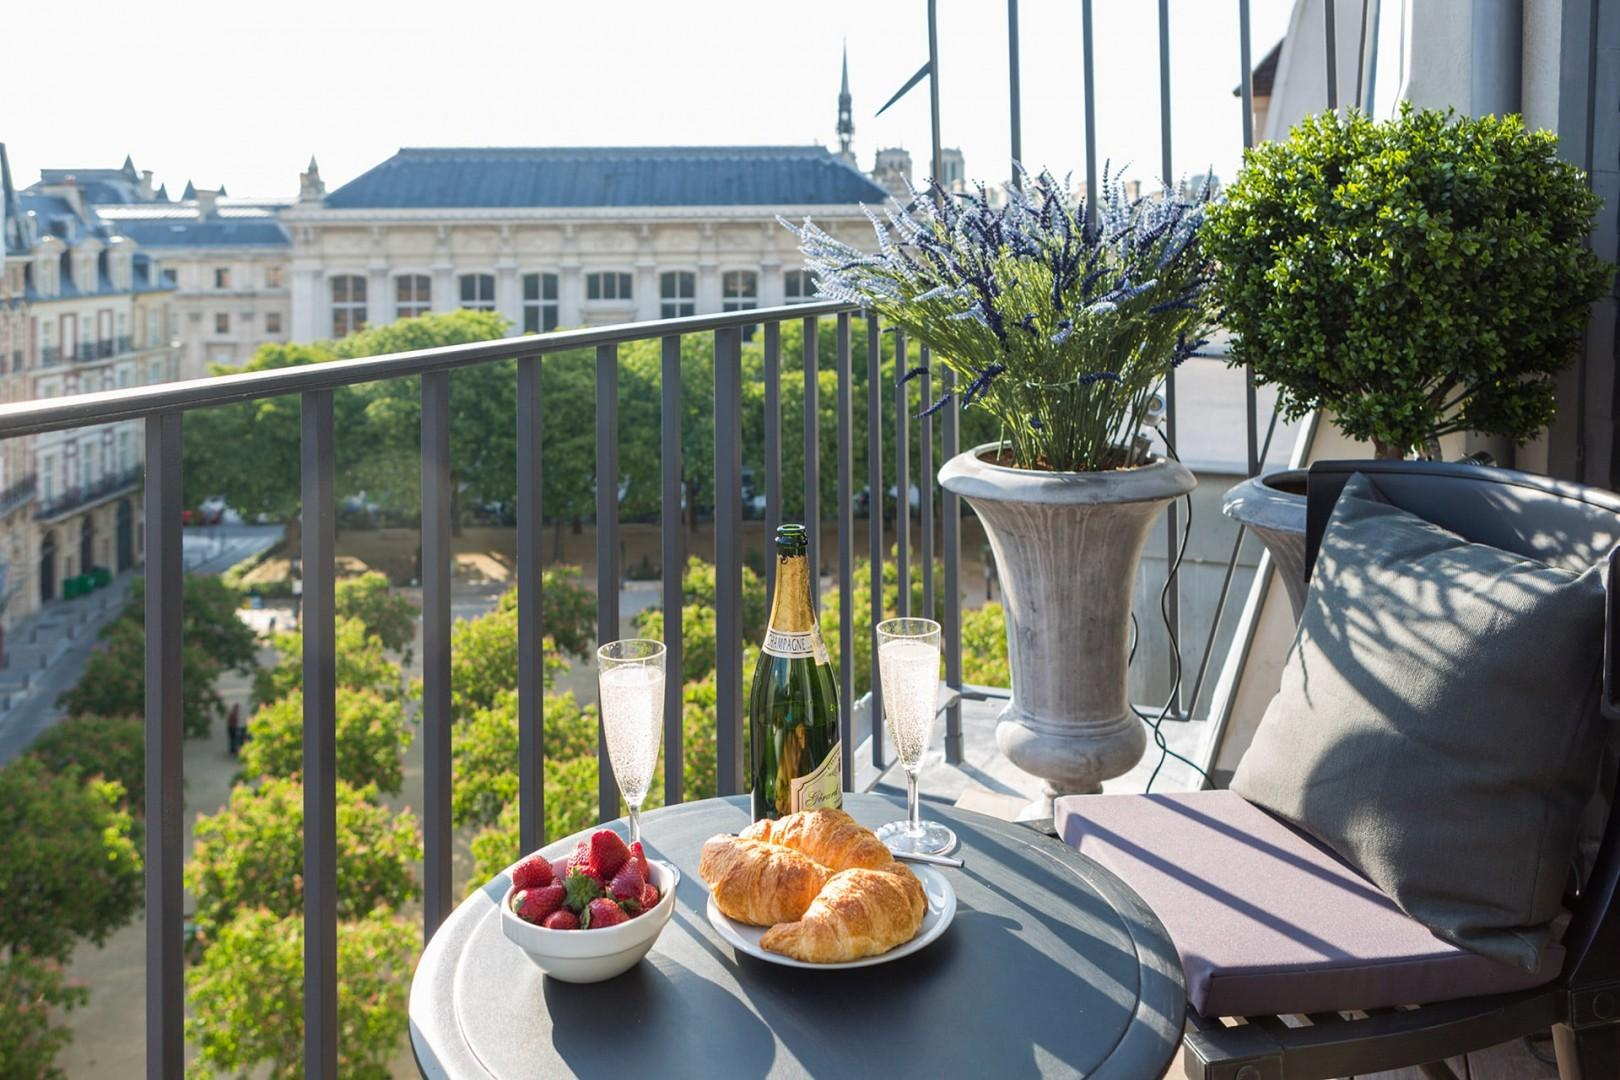 Toast your stay at the Savennières apartment in Paris!